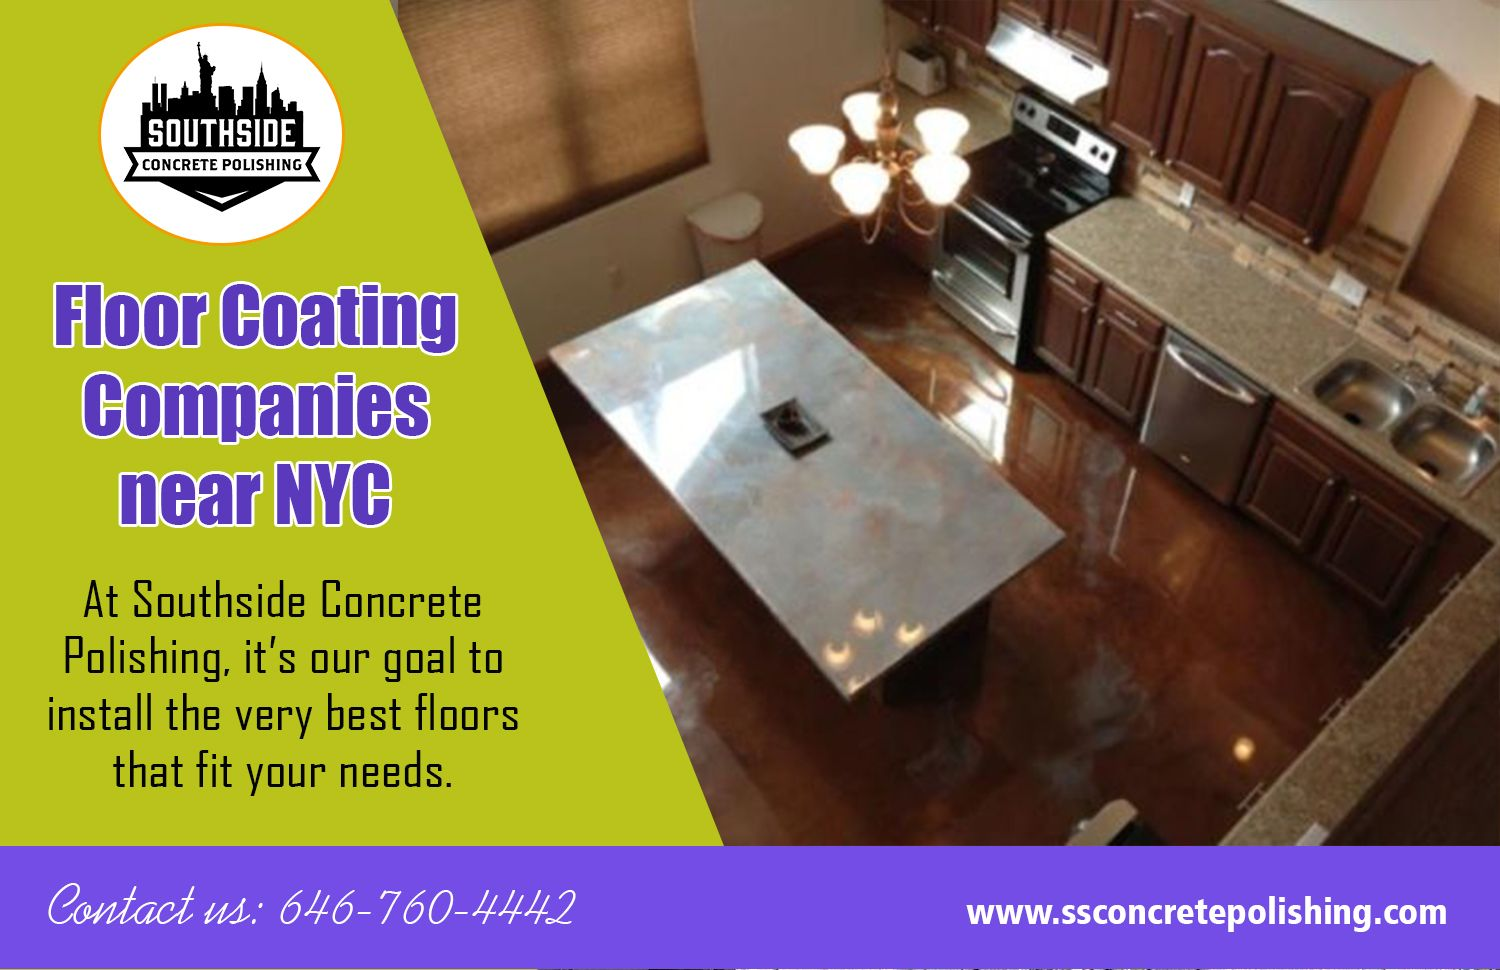 Concrete Floor Coating contractors near in NYC offer